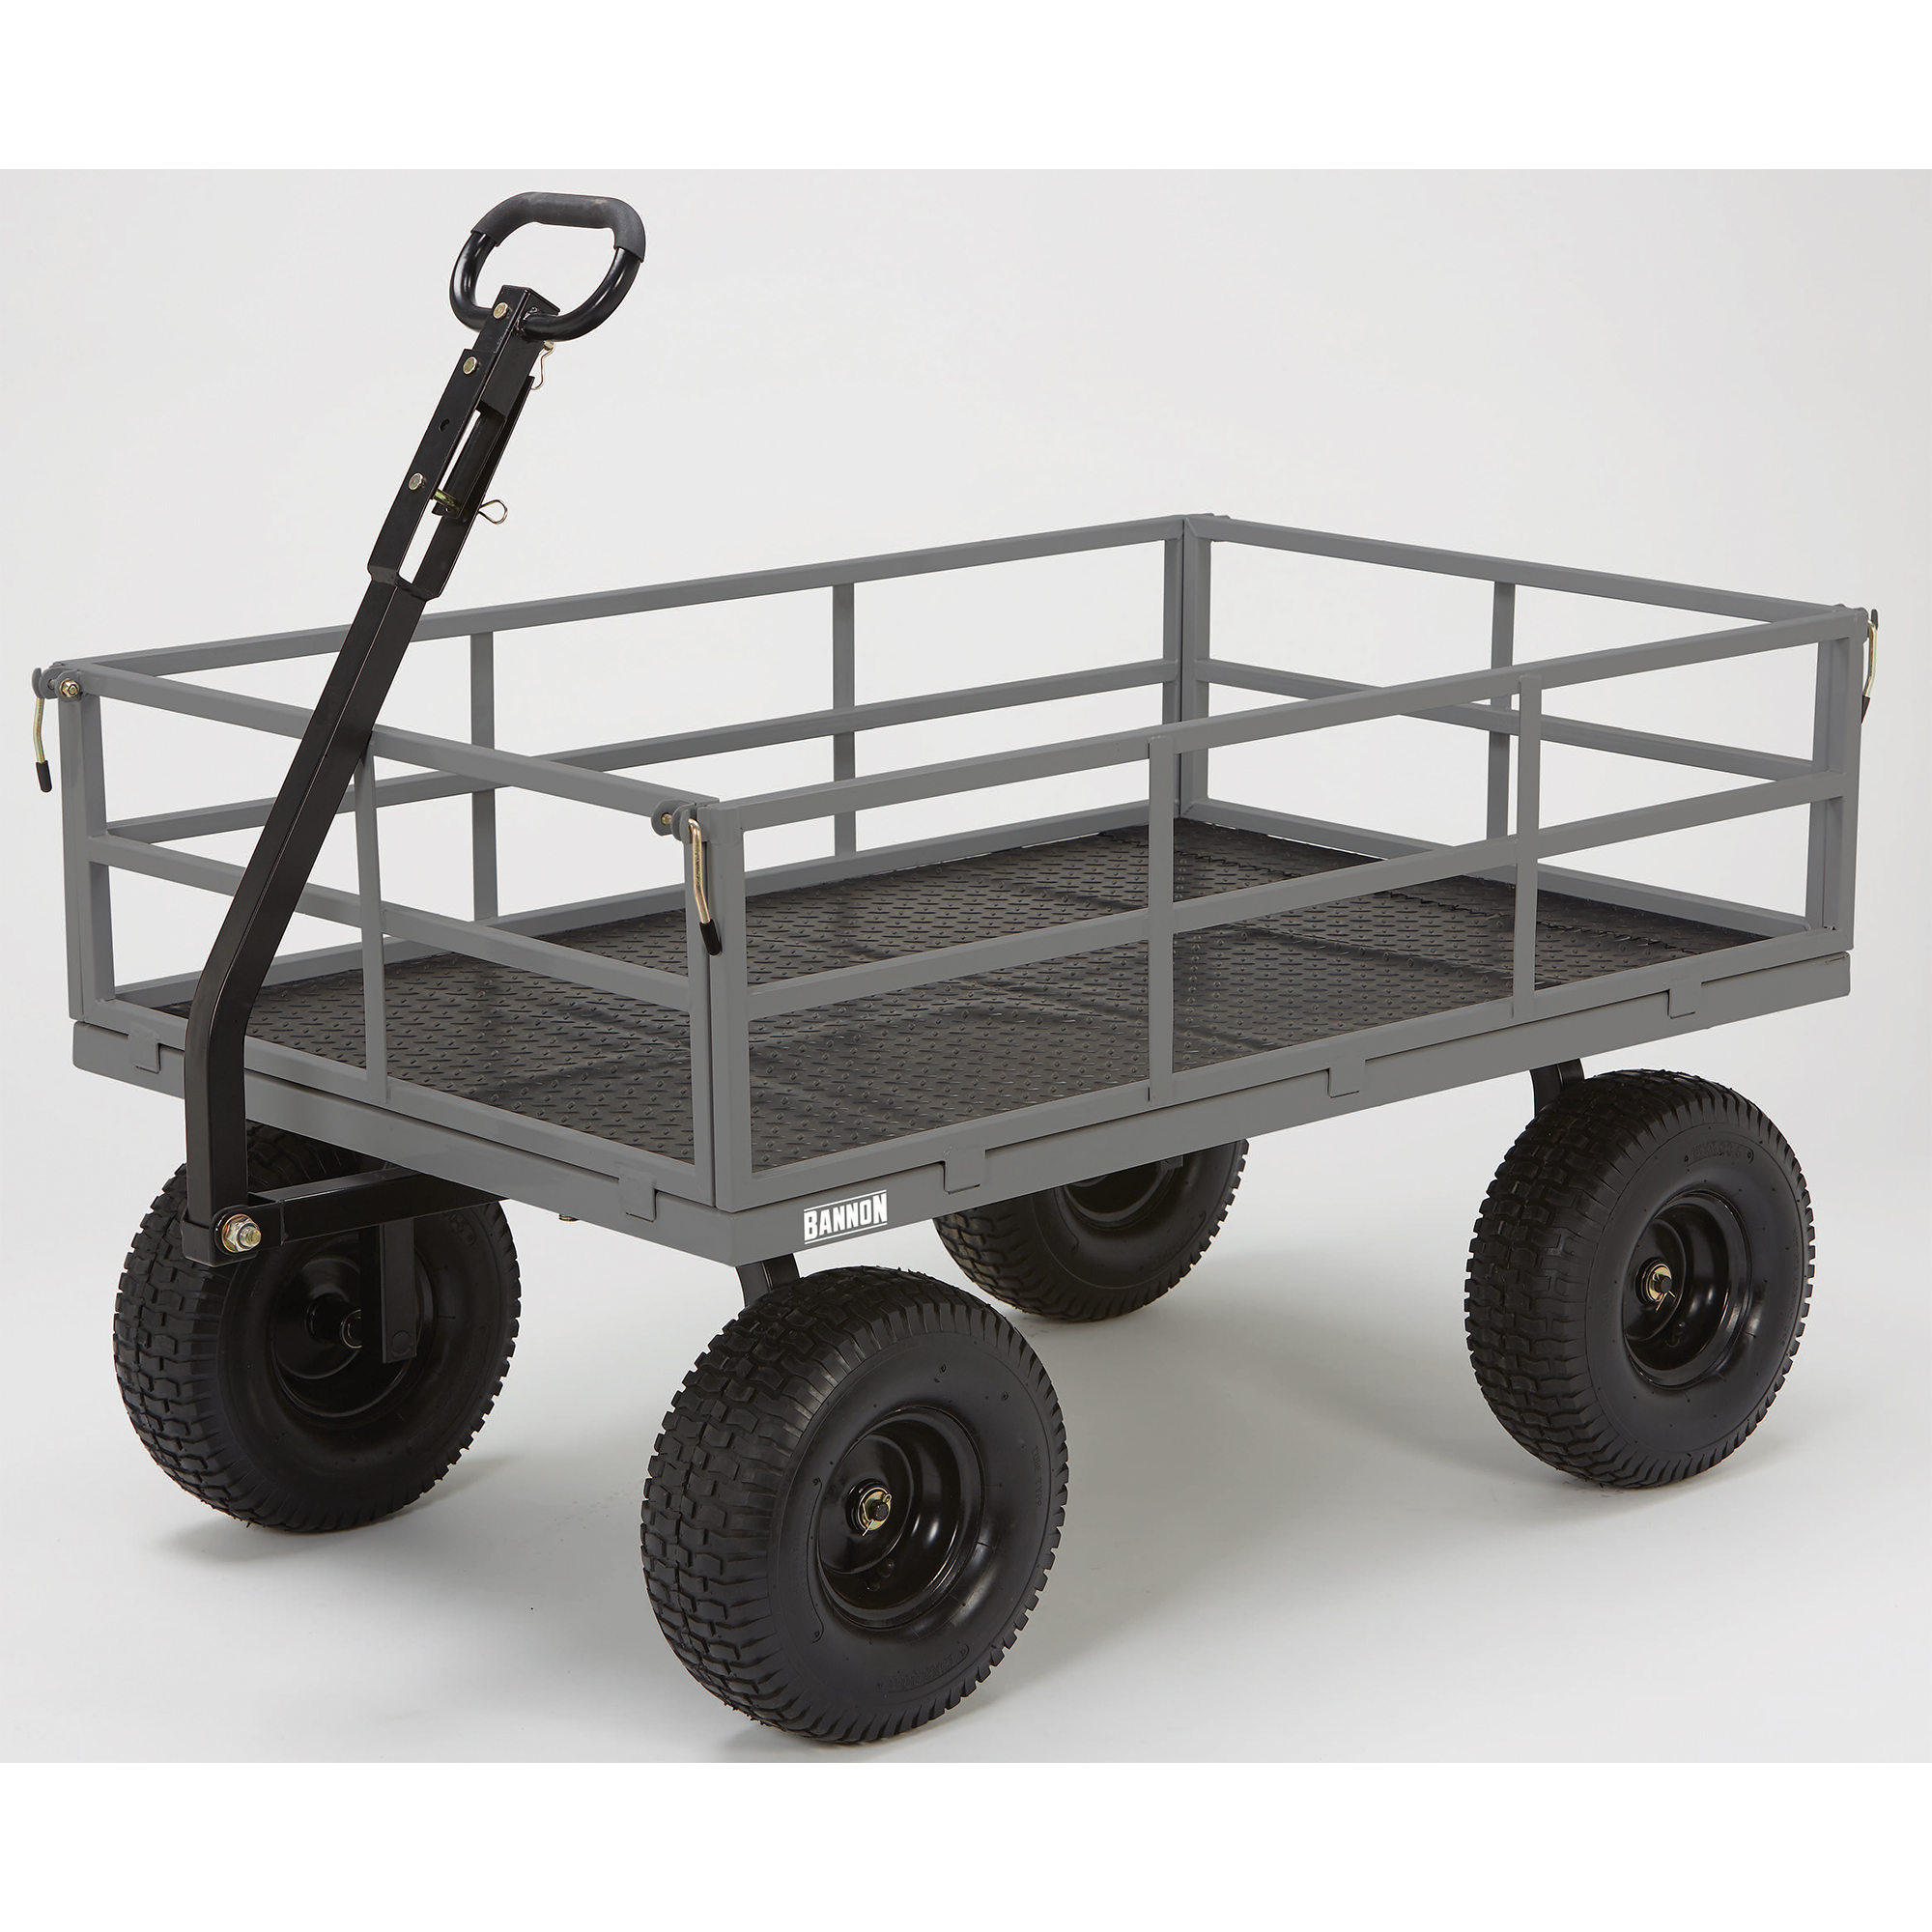 Garden Utility Cart Replacement Parts : Groundwork garden utility cart parts ftempo